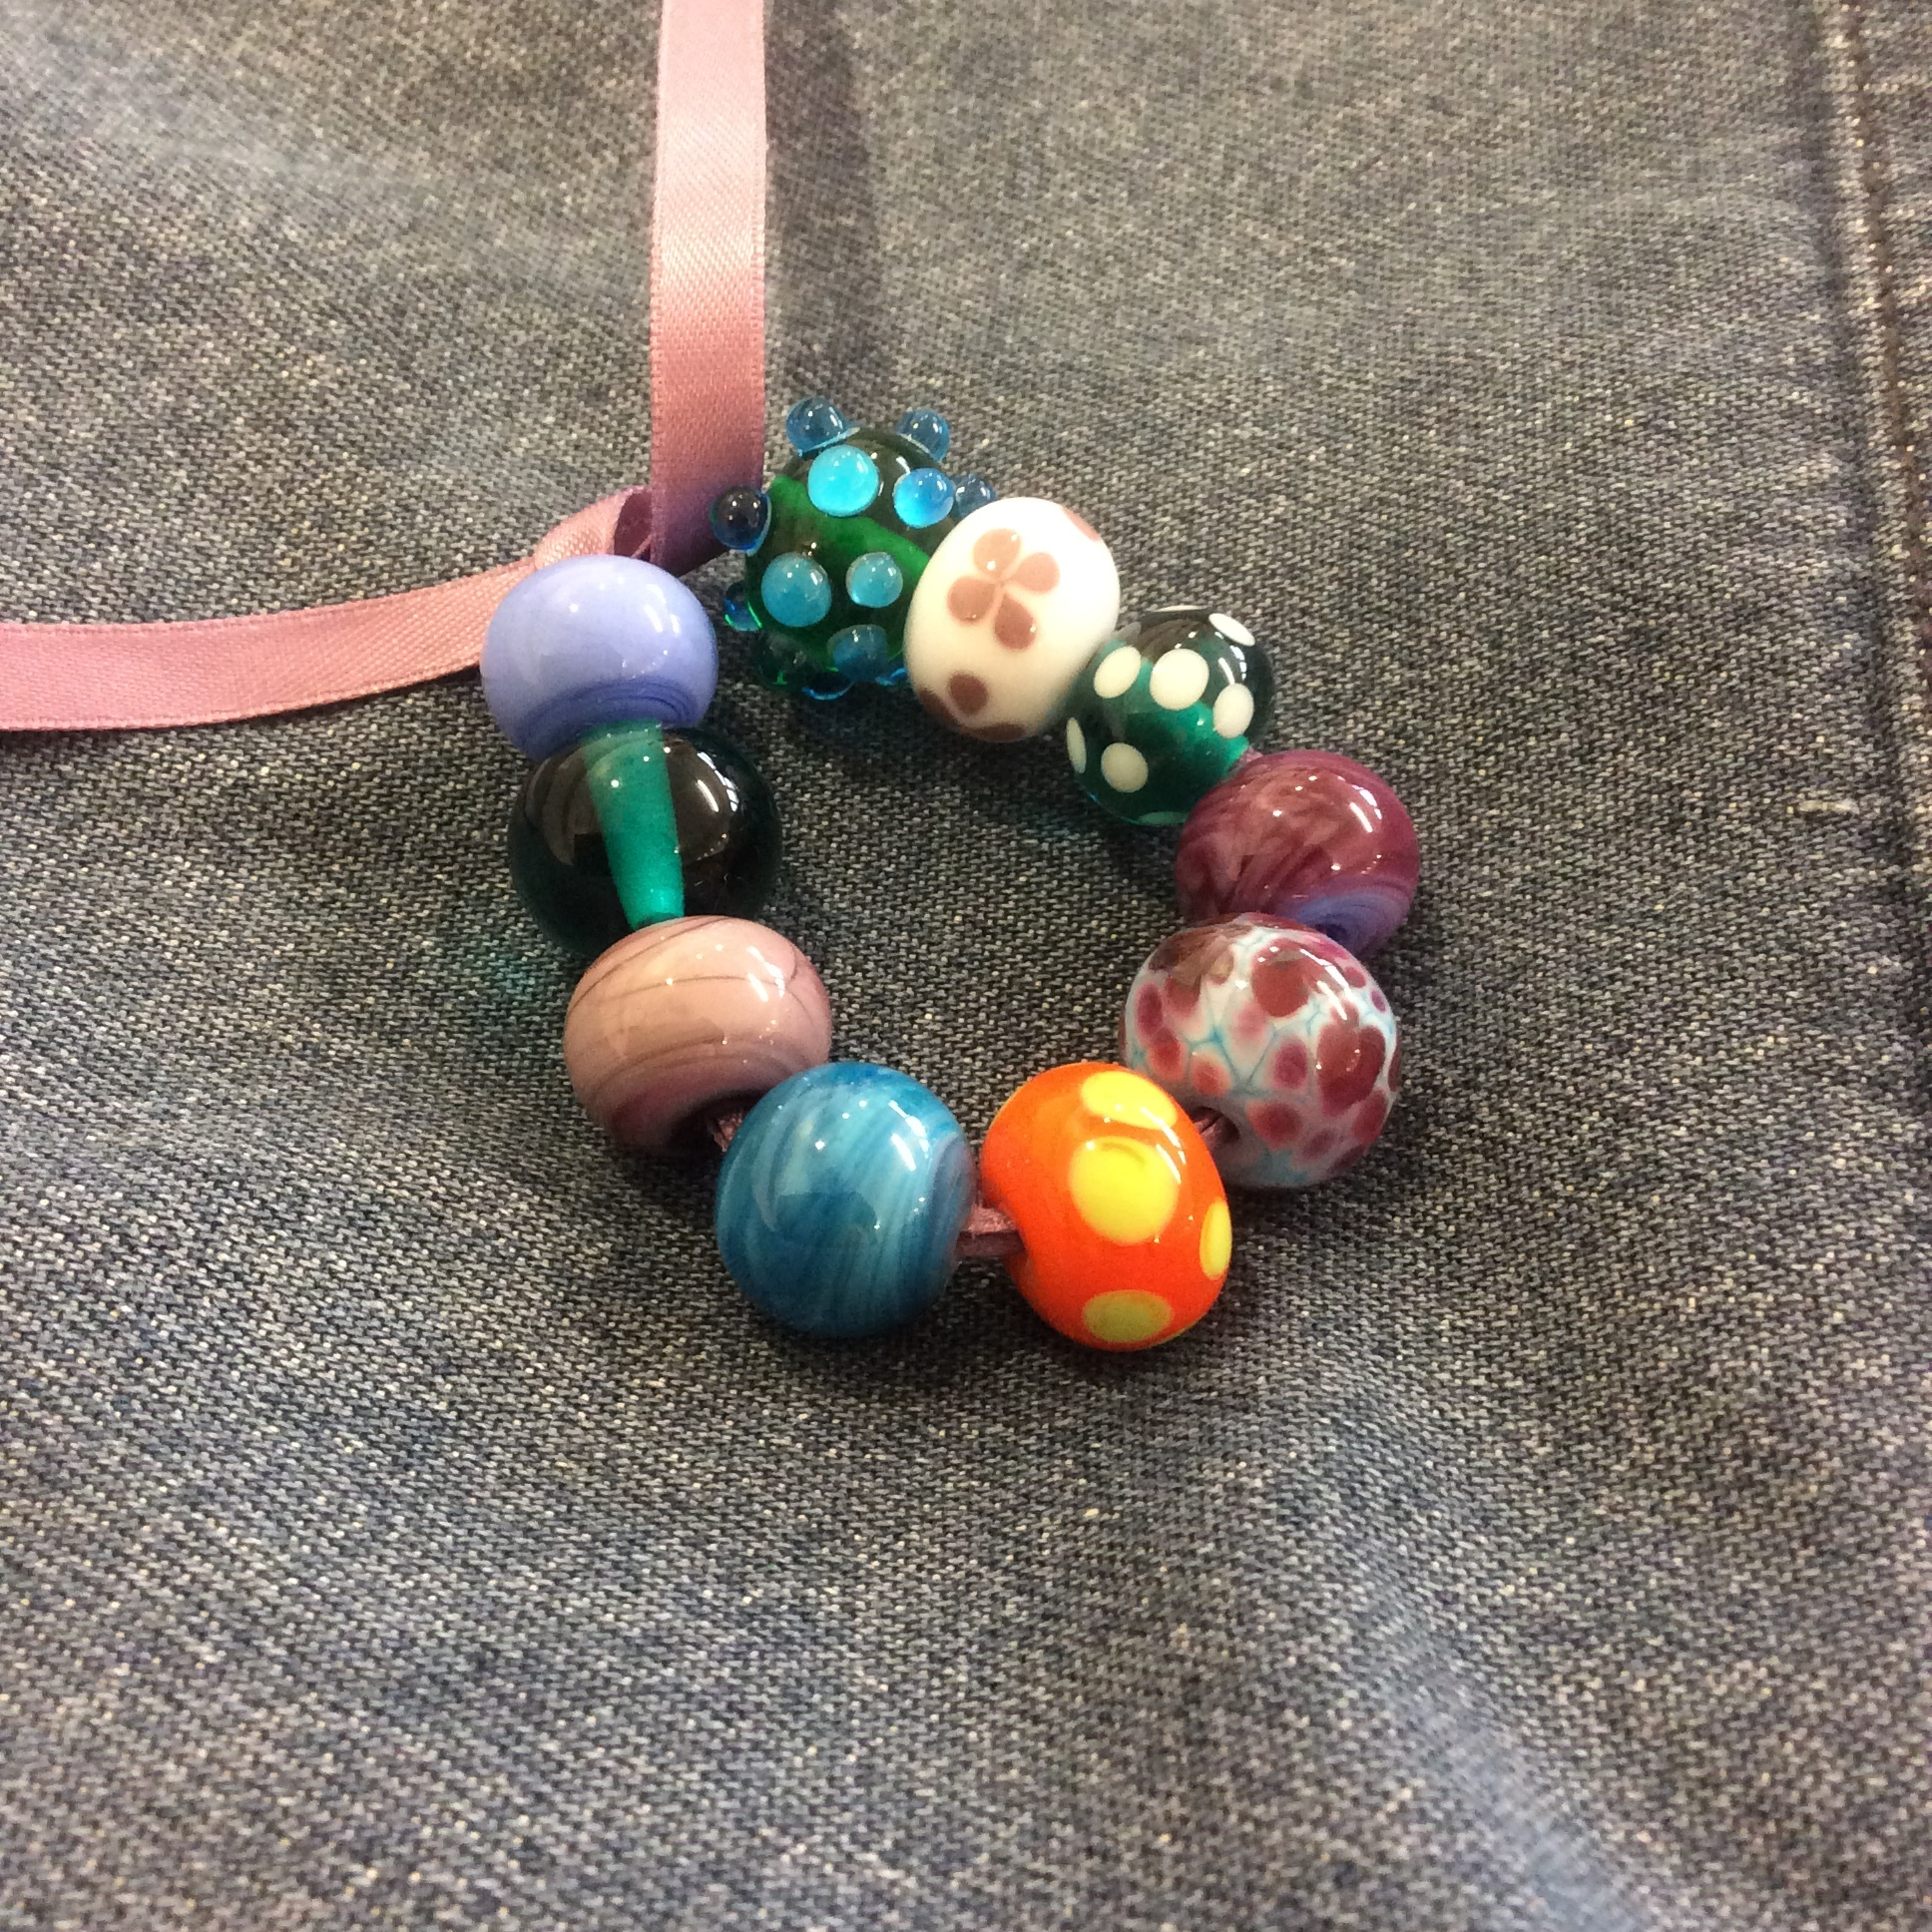 Clare's finished beads strung on ribbon in the order in which she made them. It's lovely to be able to follow the journey from the simplest bead to the most complicated!